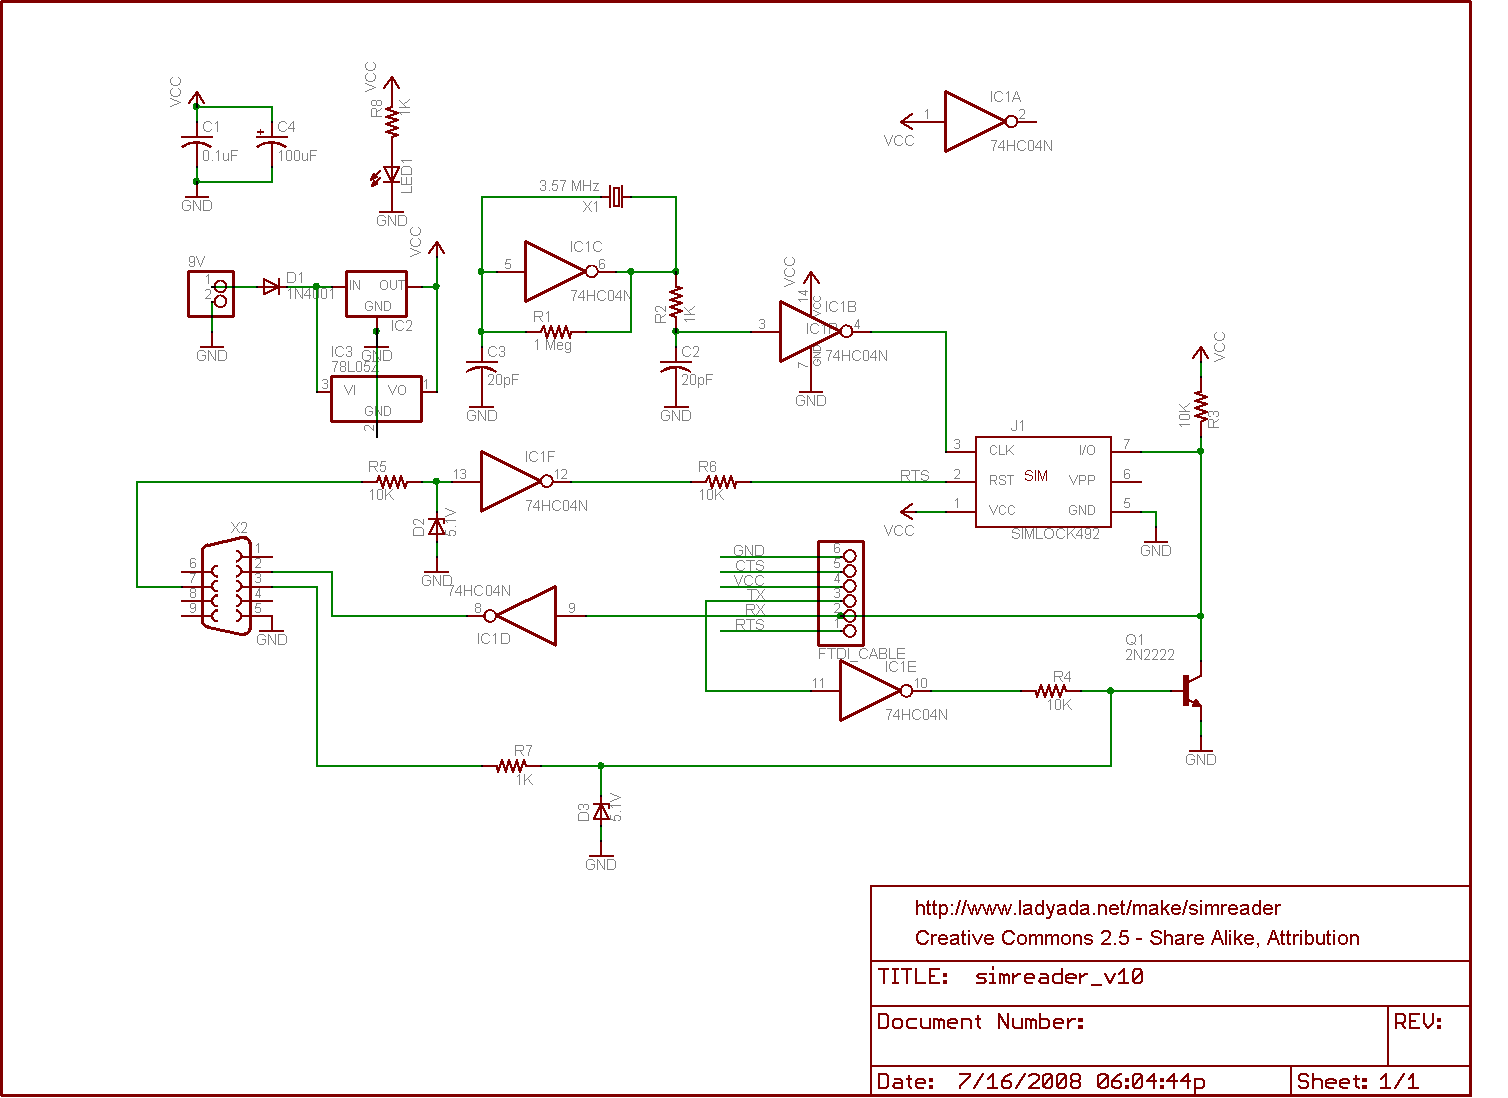 Results Page 43 About Mic Searching Circuits At Block Diagram Of L293d Motor Driver At89c52 And Whole Circuit Learning How Does This Sim Card Reader Work